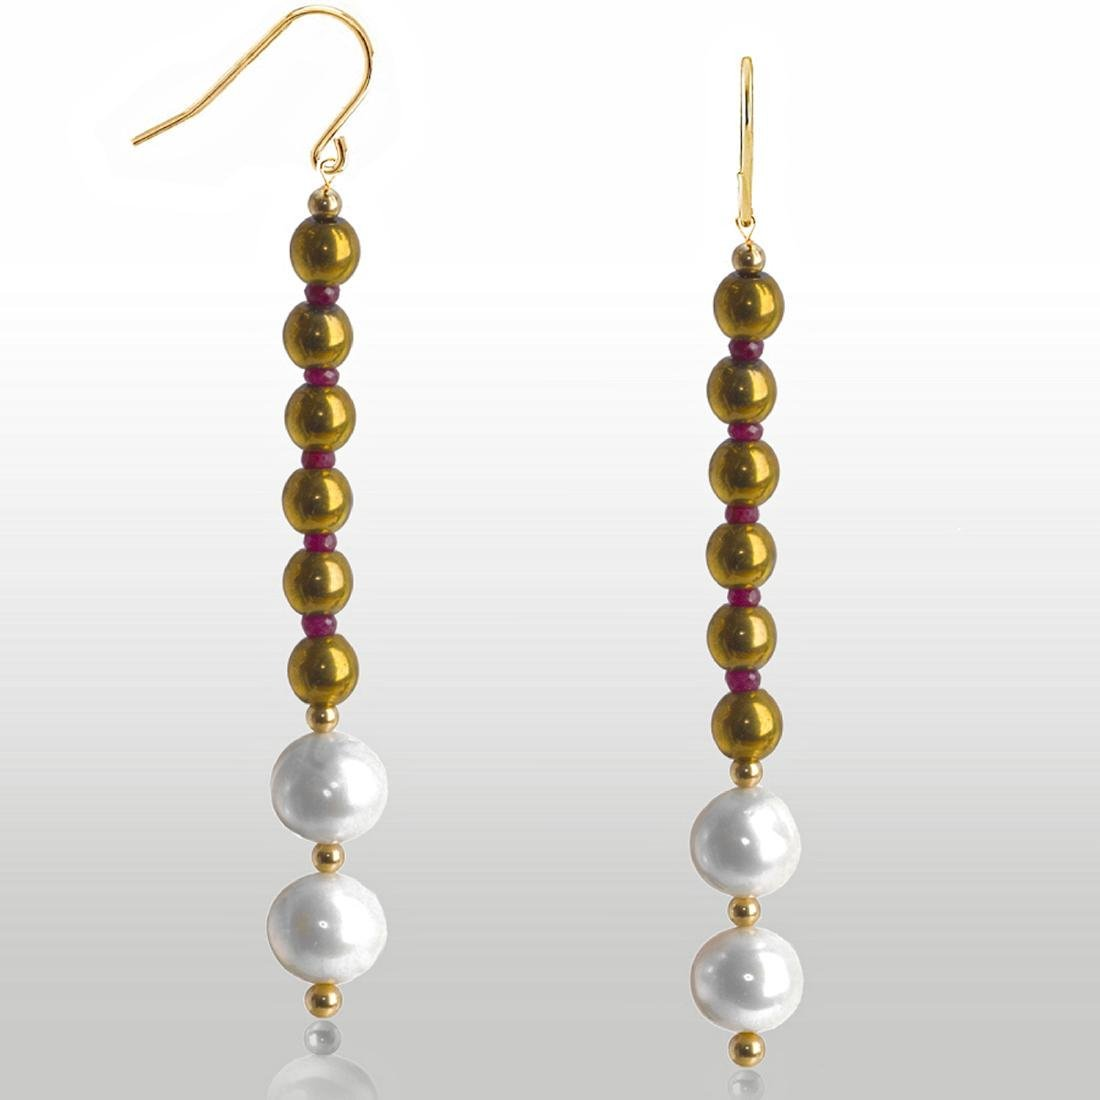 14kt Gold 'Line' Earrings with Pearls and Rubies